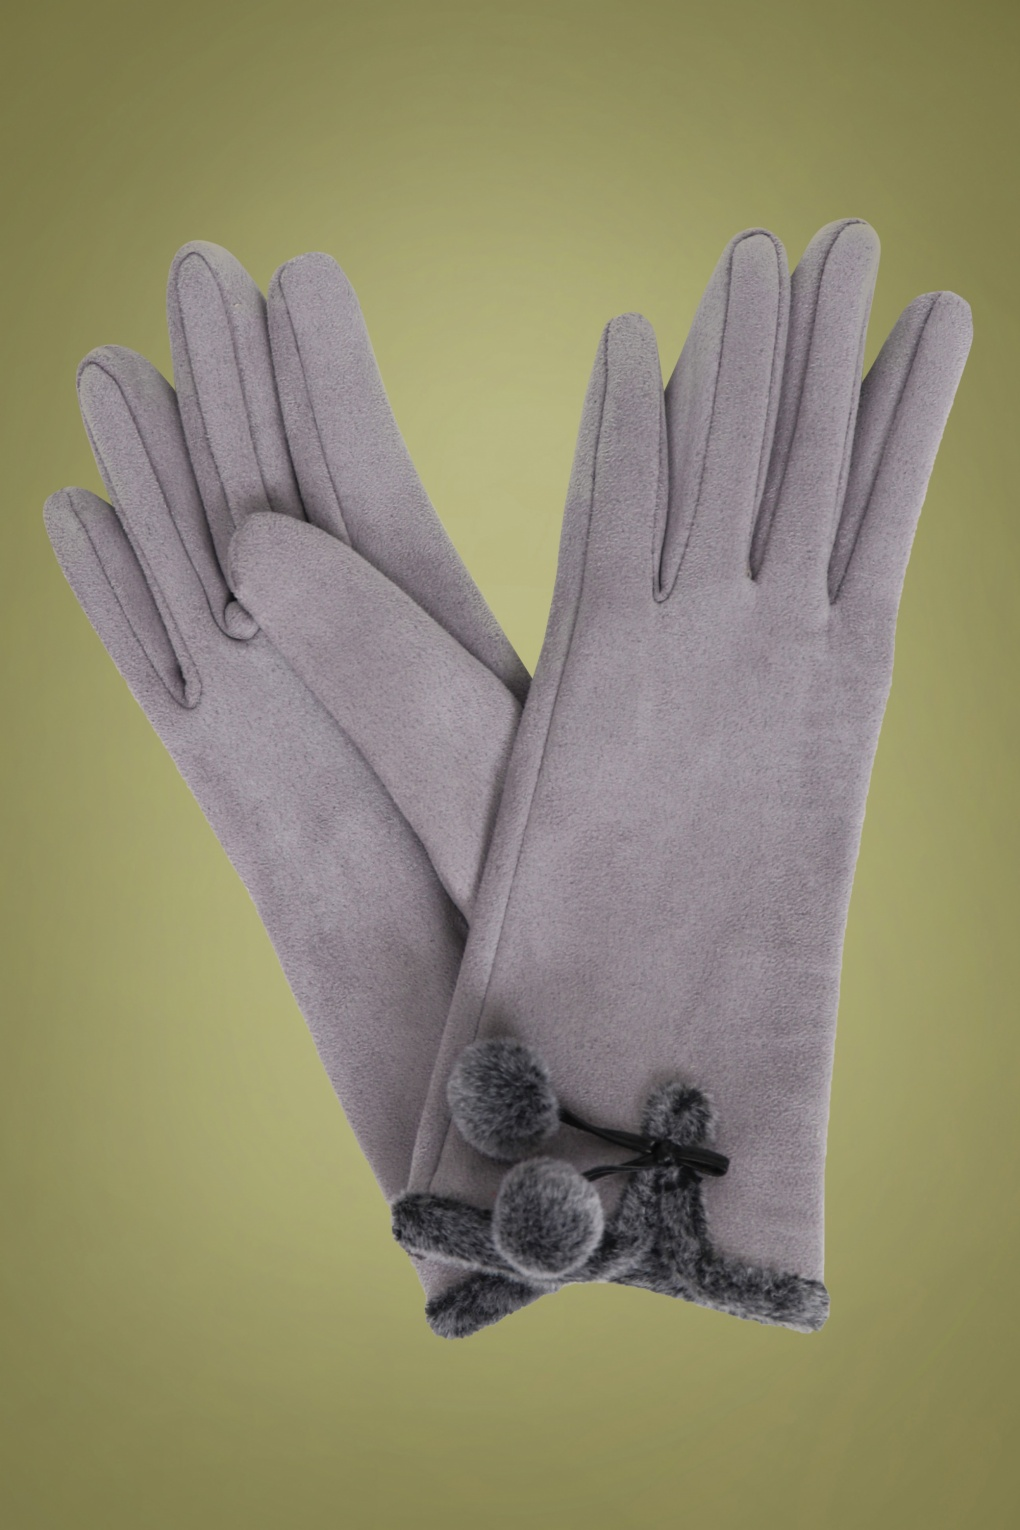 Vintage Style Gloves- Long, Wrist, Evening, Day, Leather, Lace 40s Amelia Pom Pom Suedine Gloves in Pale Grey £24.72 AT vintagedancer.com